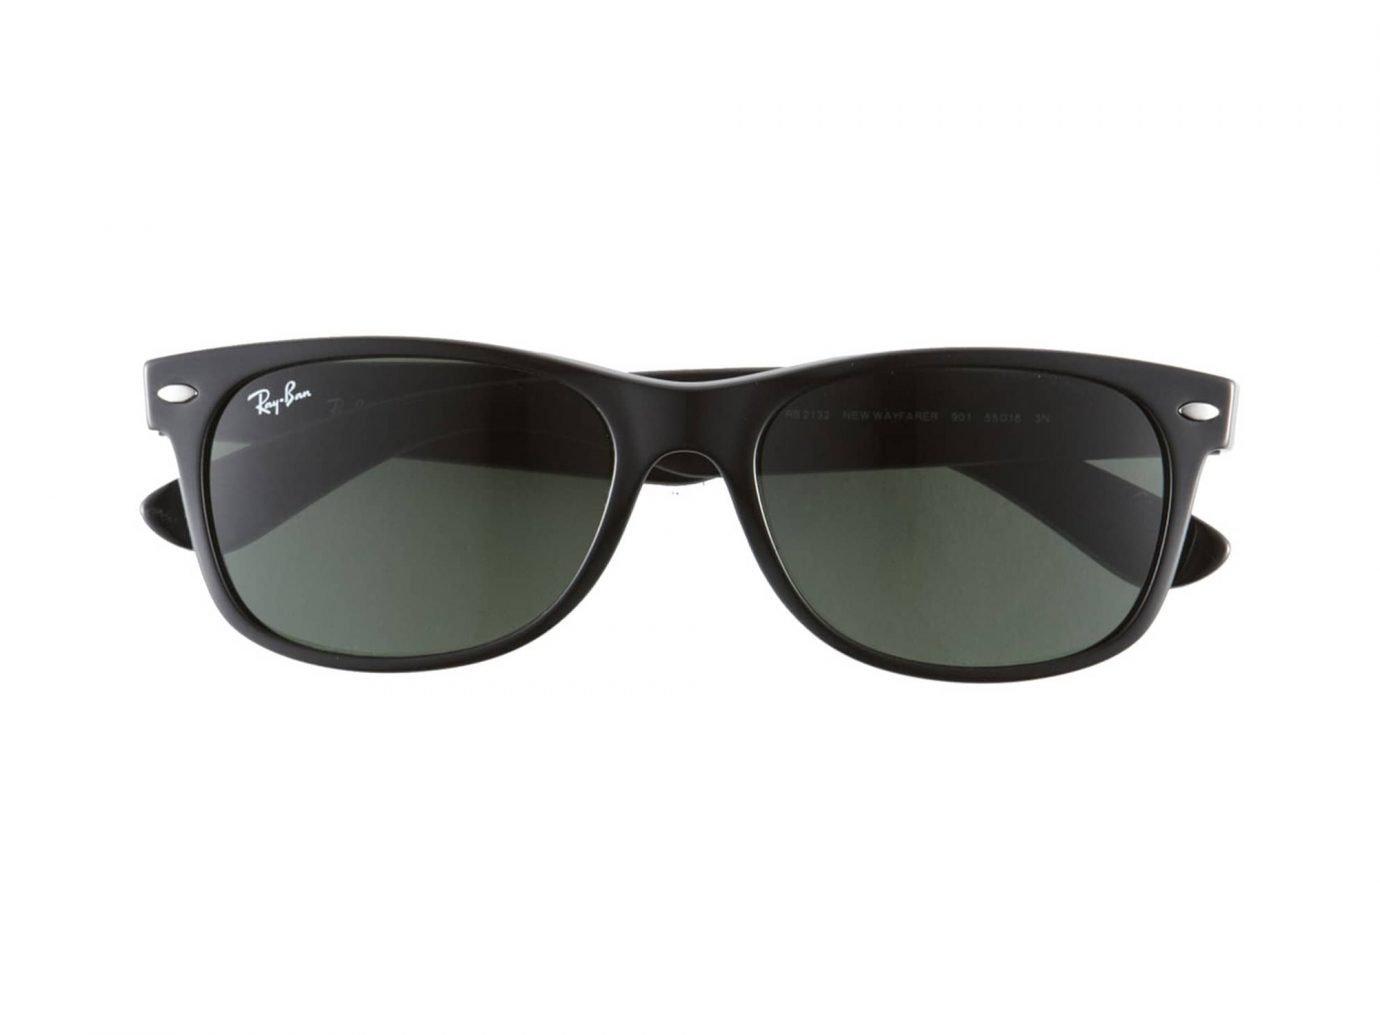 Ray-Ban Wayfarer 55mm Sunglasses